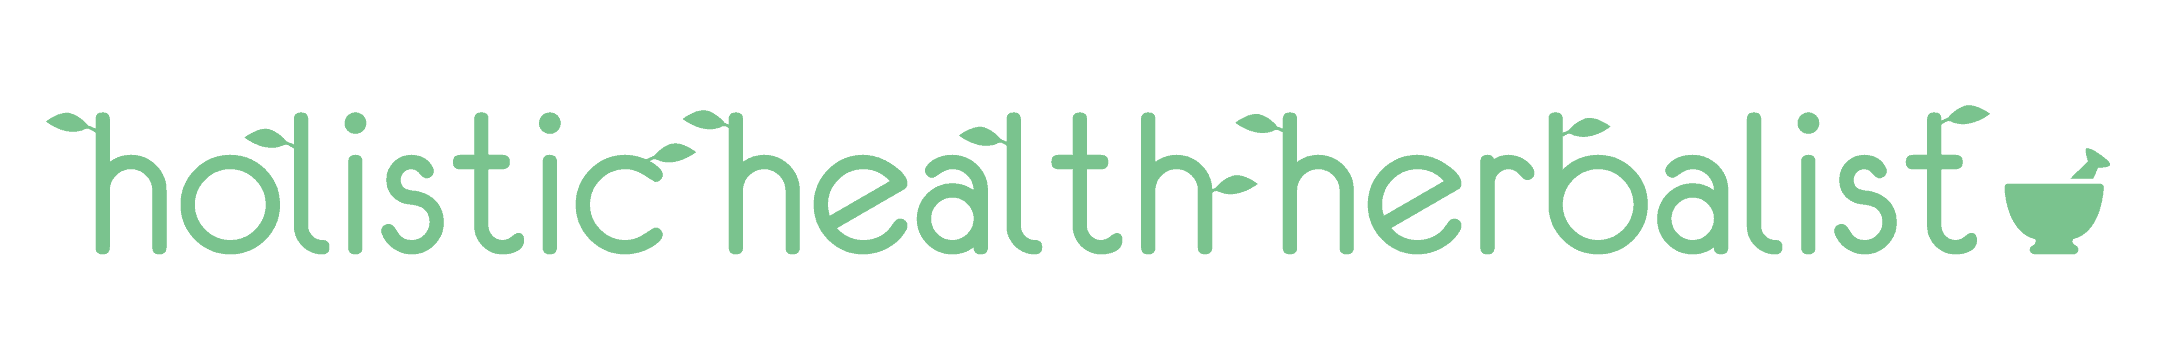 Holistic Health Herbalist